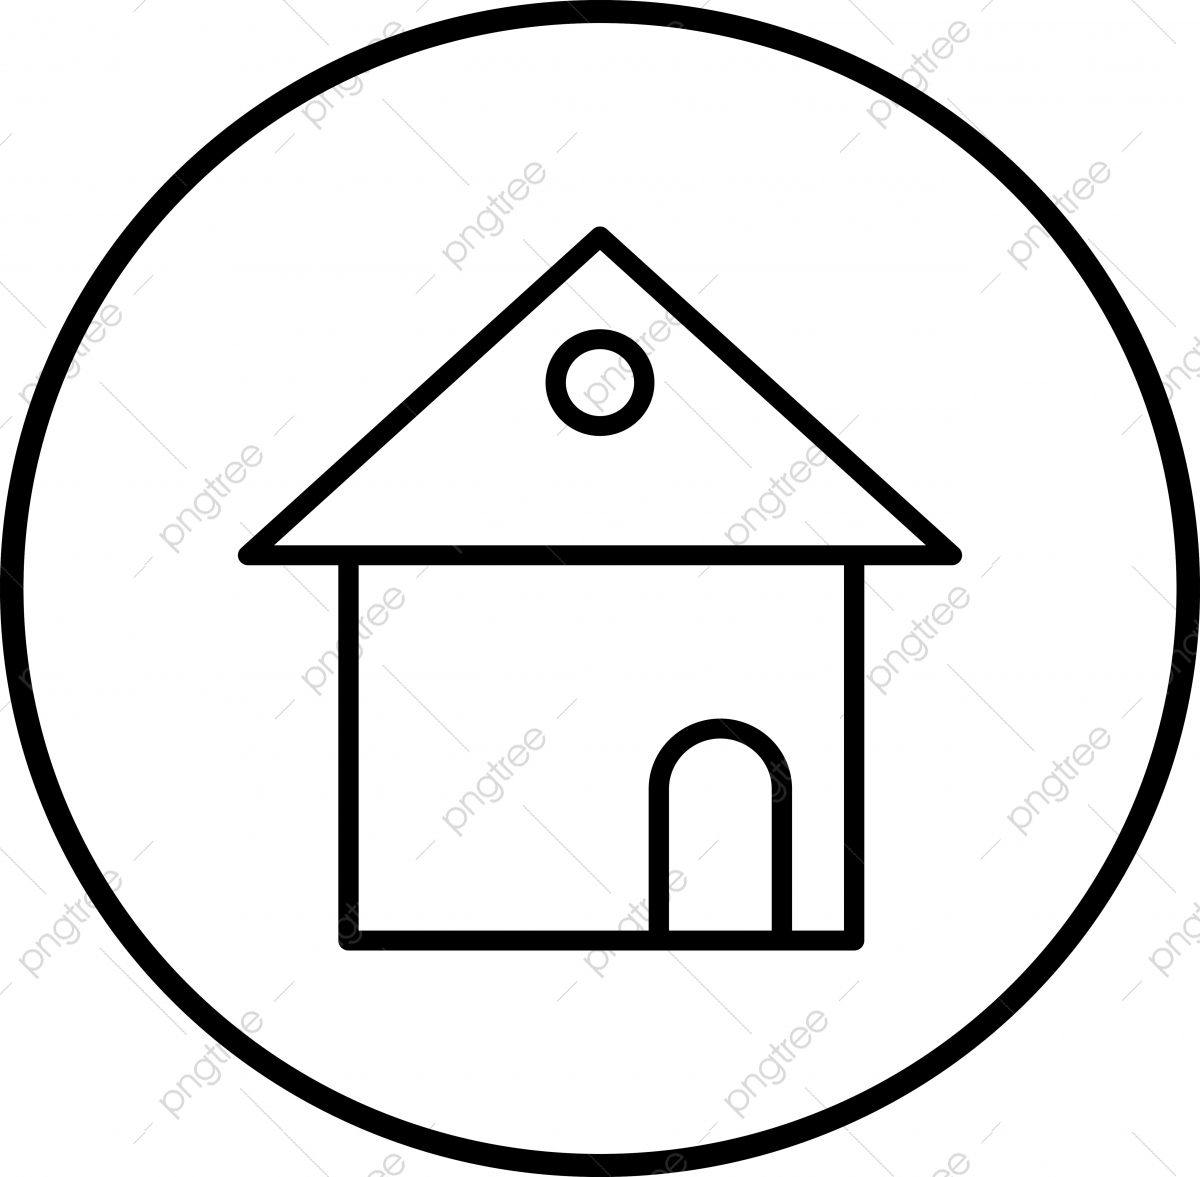 https fr pngtree com freepng house vector icon white background 5259675 html